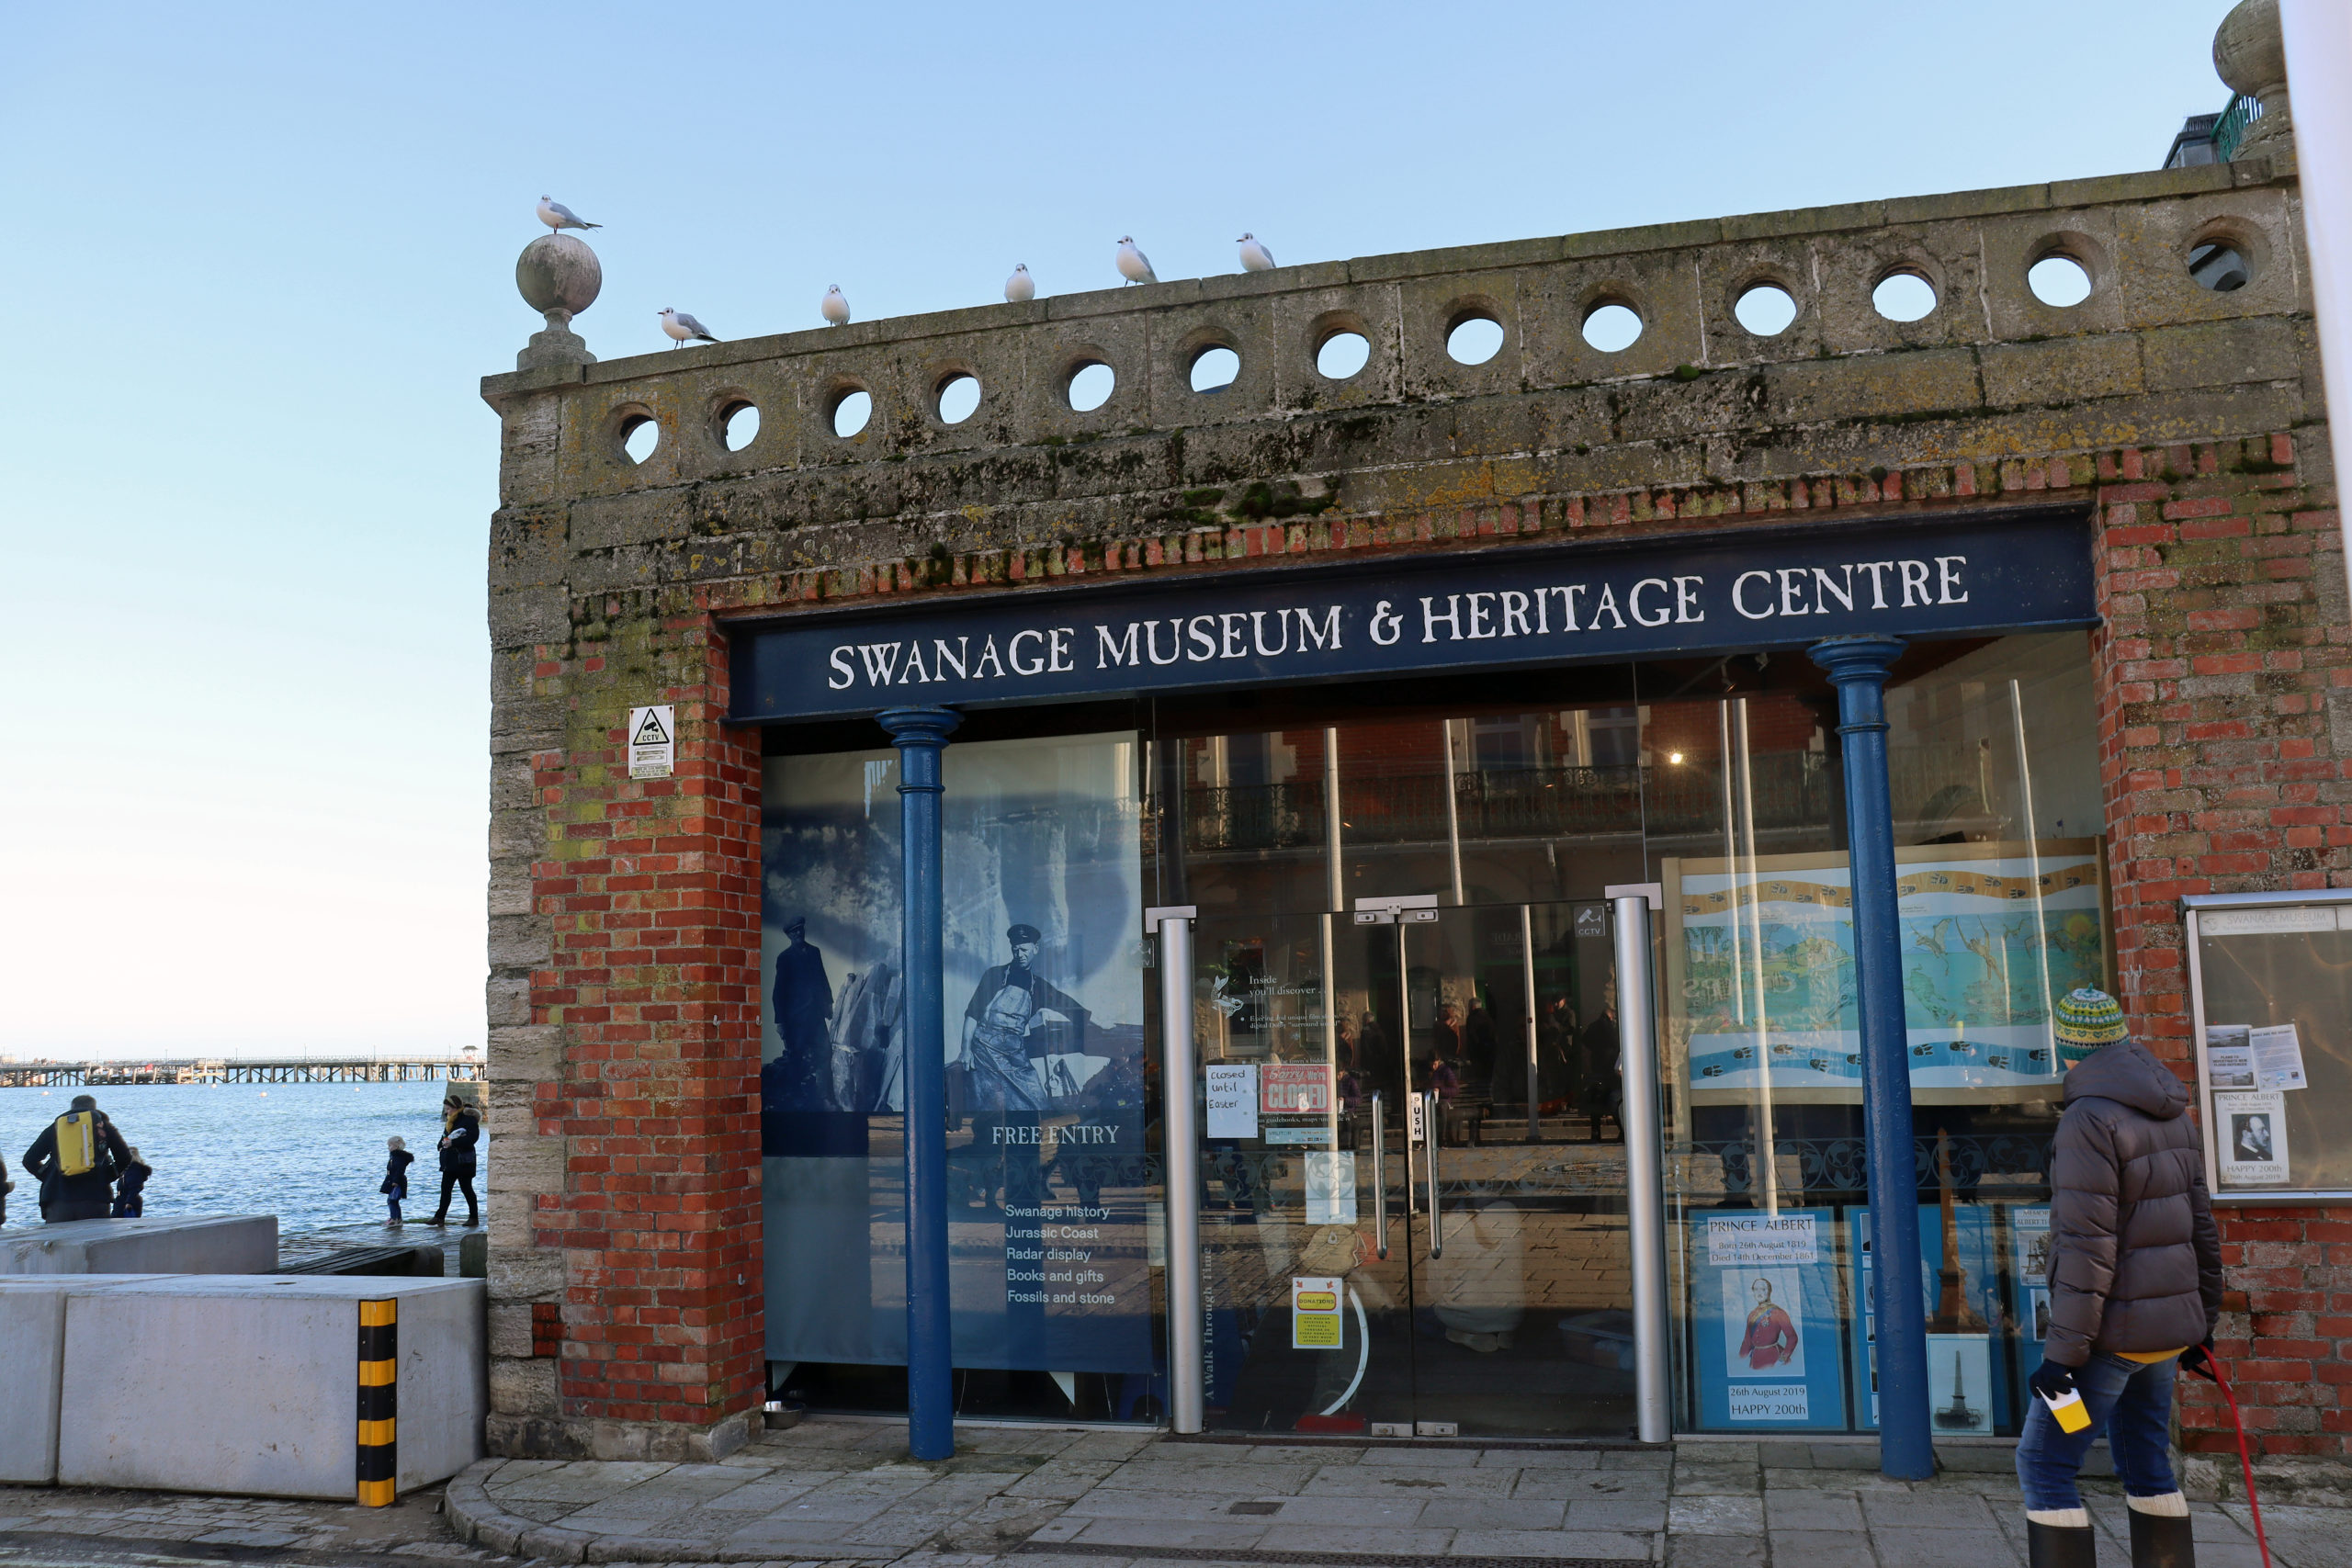 Exterior of Swanage Museum